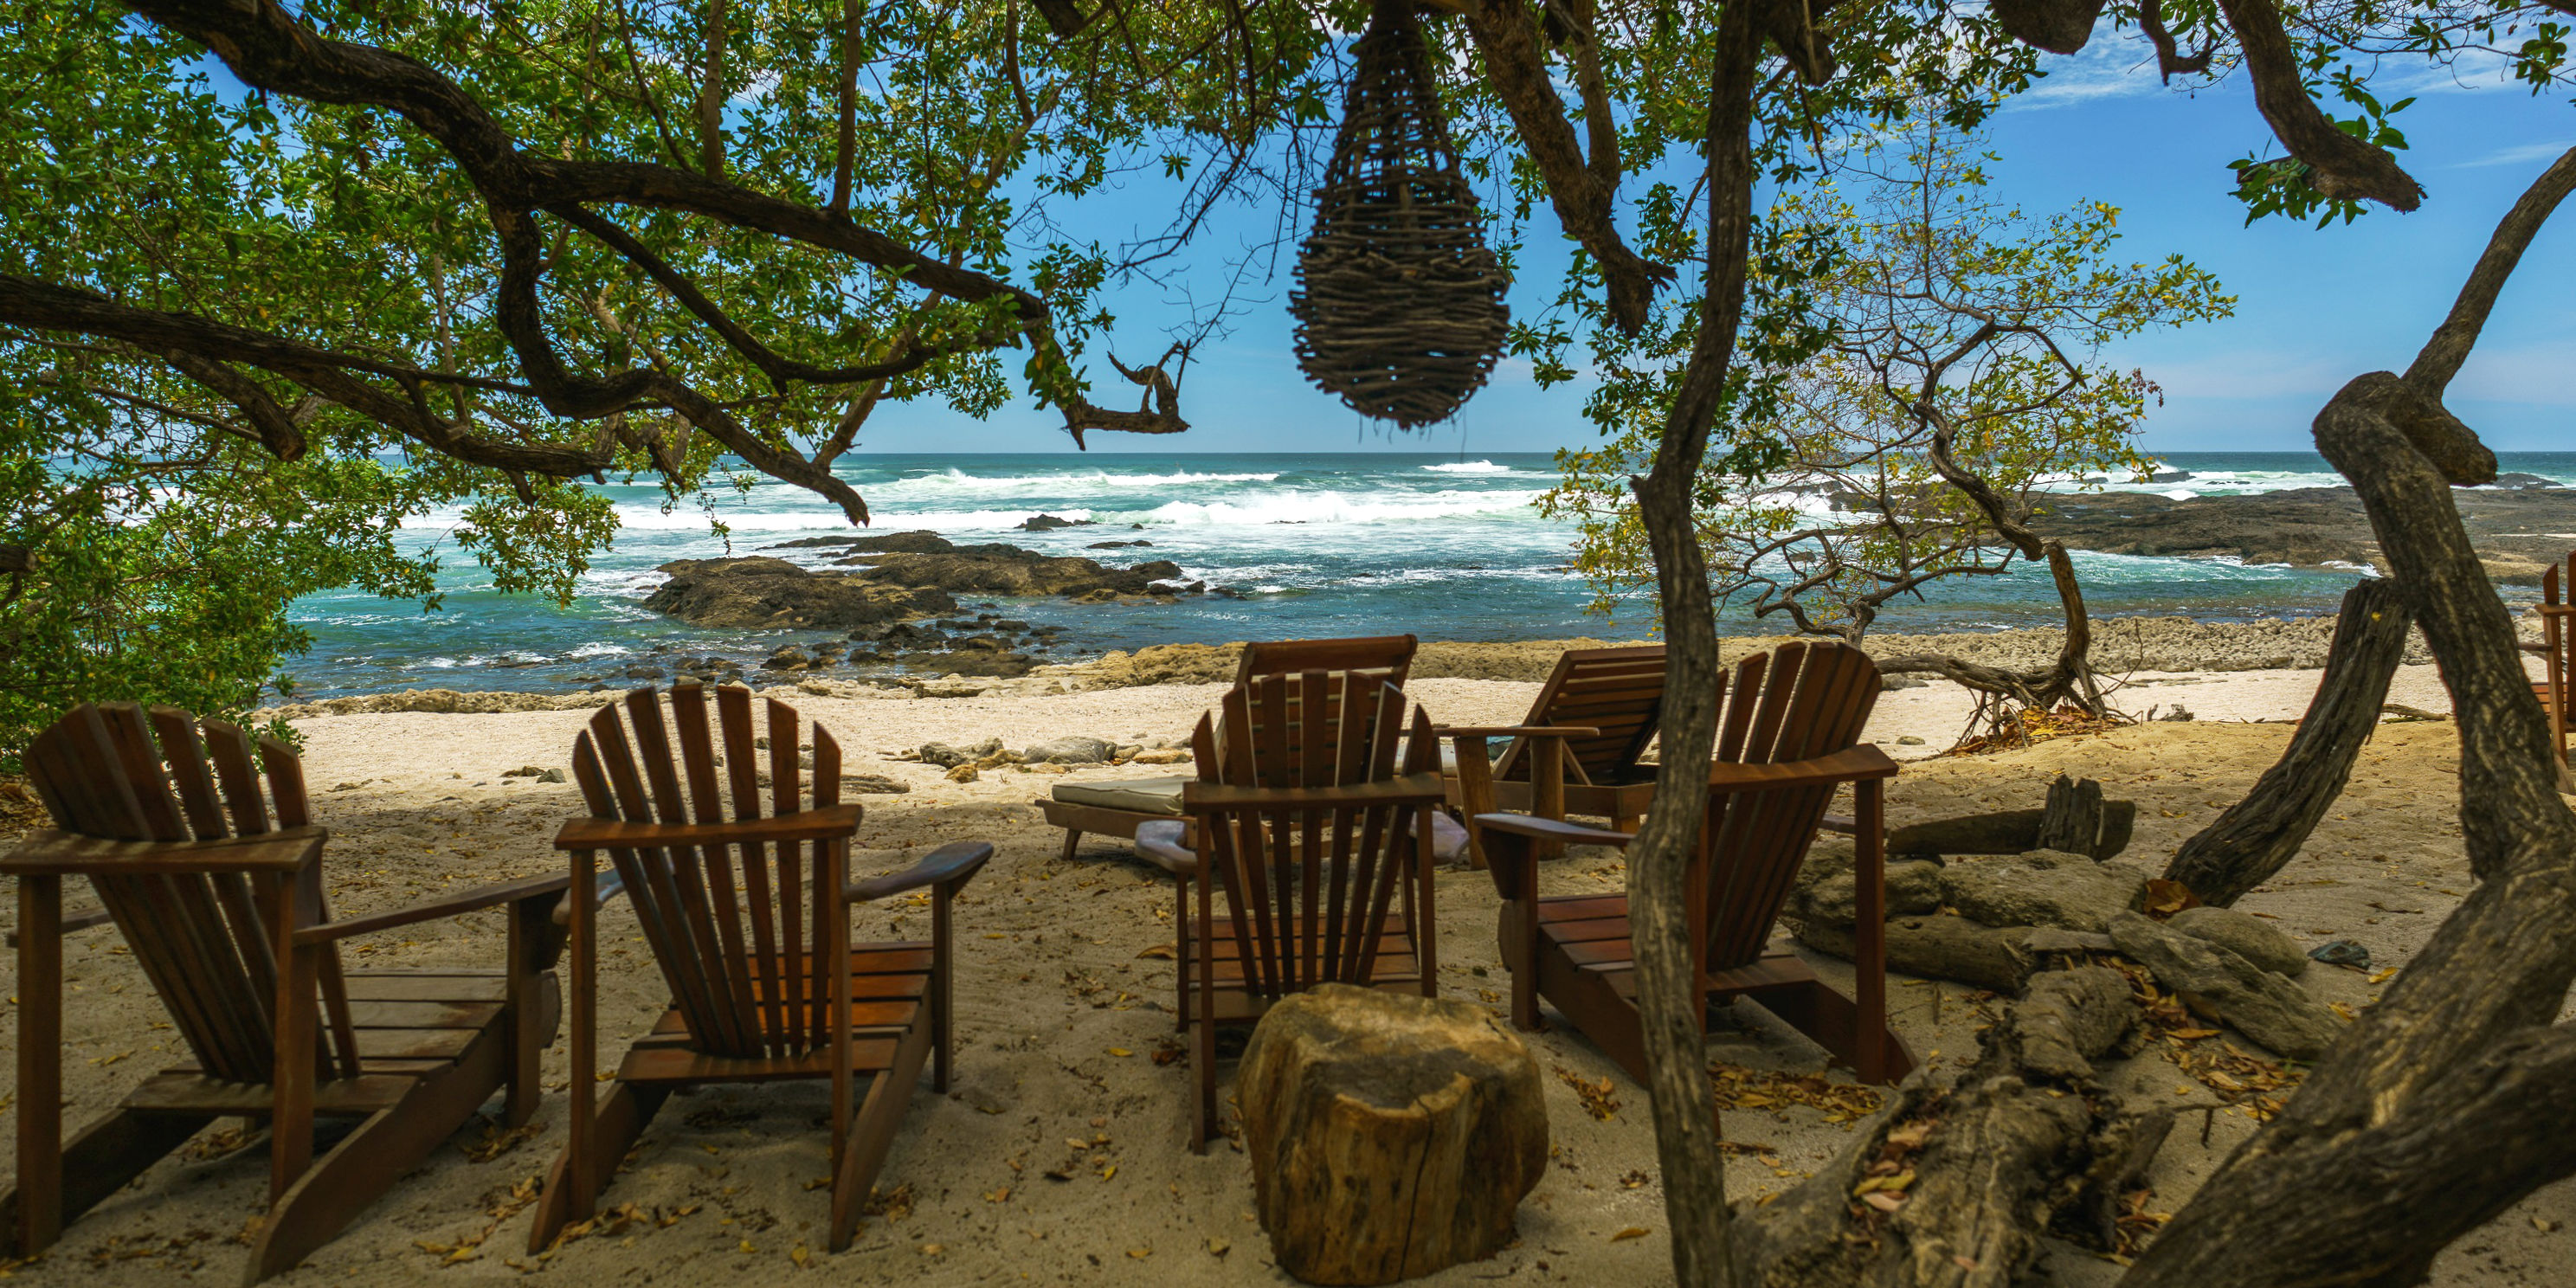 This beachside resort in Costa Rica may seem idyllic, but the habitat loss required for its construction poses a threat to Costa Rica sea turtles.